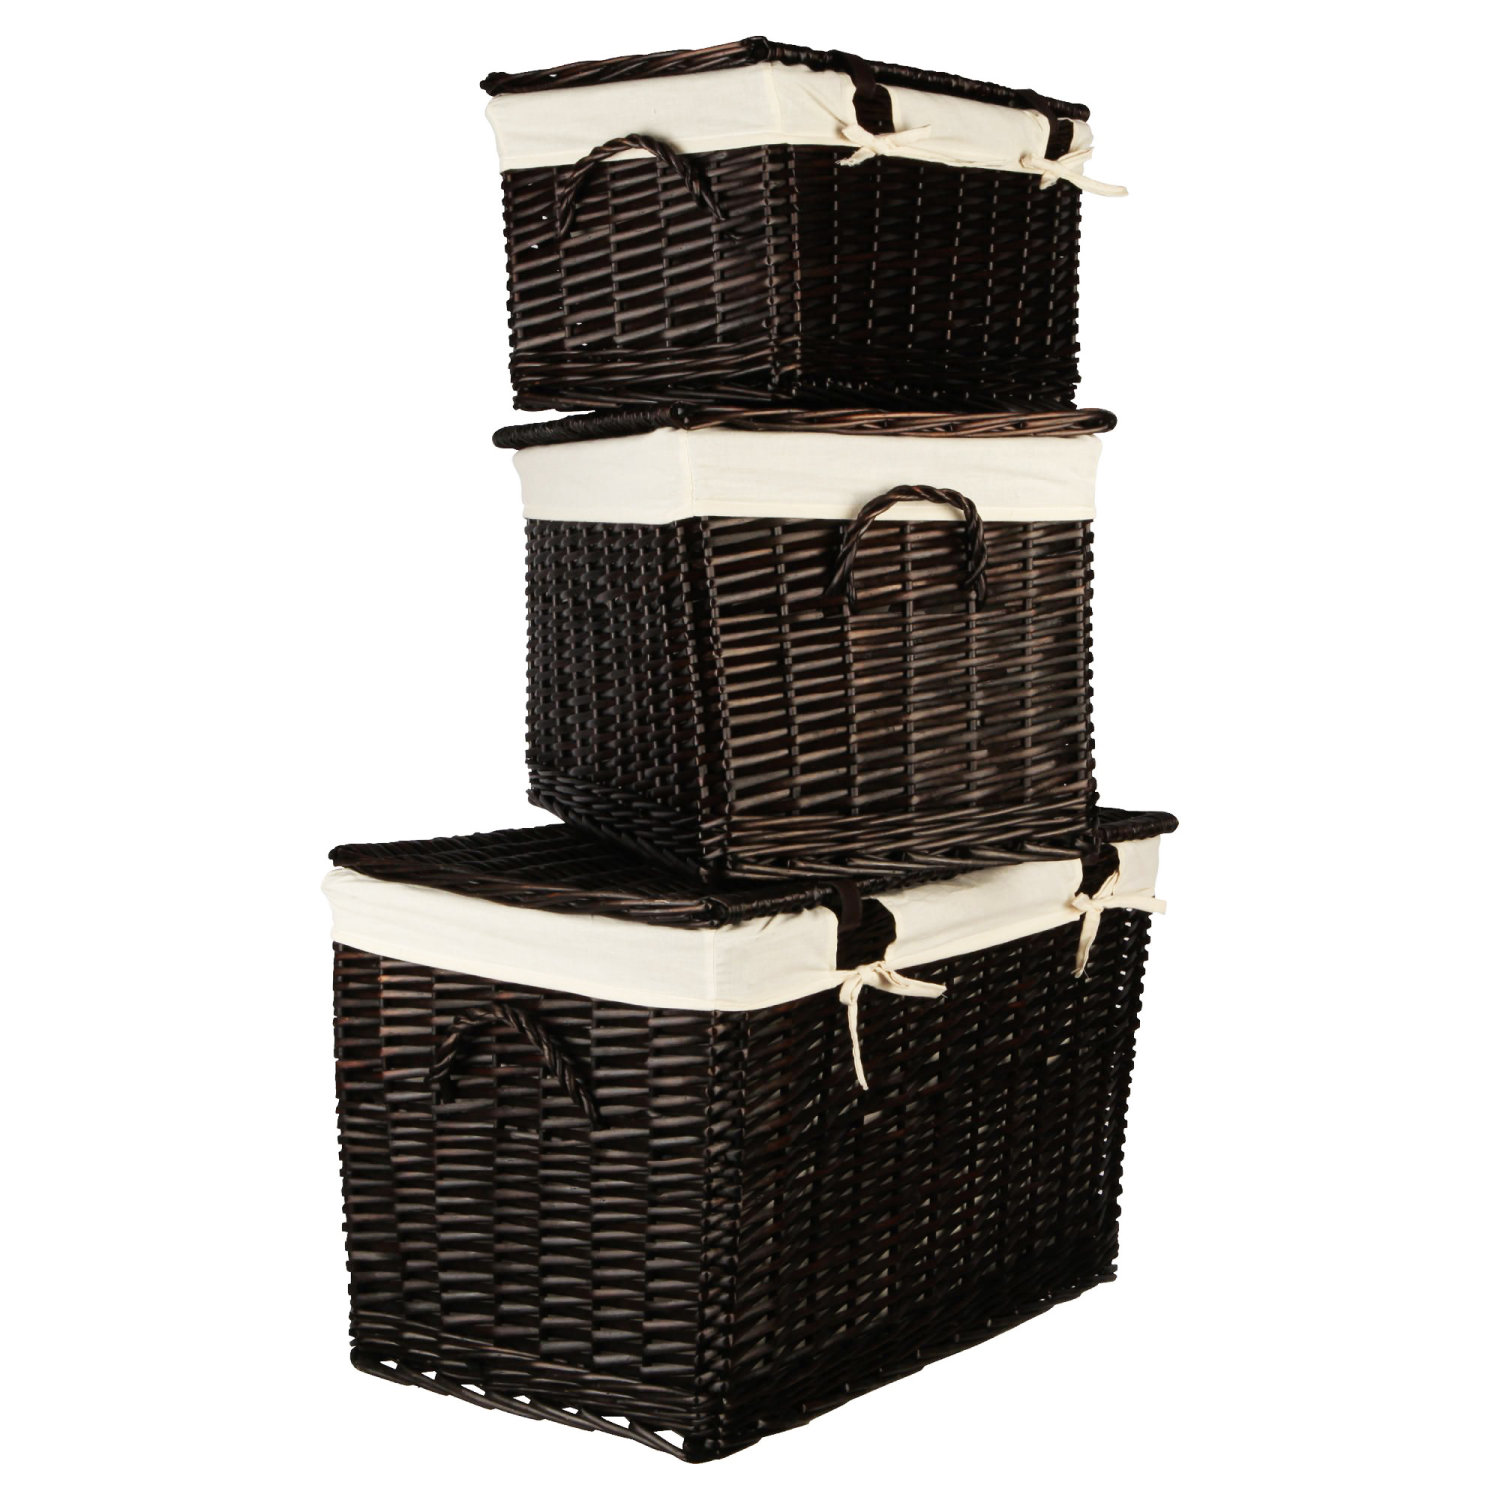 Wicker Toy Basket With Lid : Wicker lidded baskets chocolate brown pack home